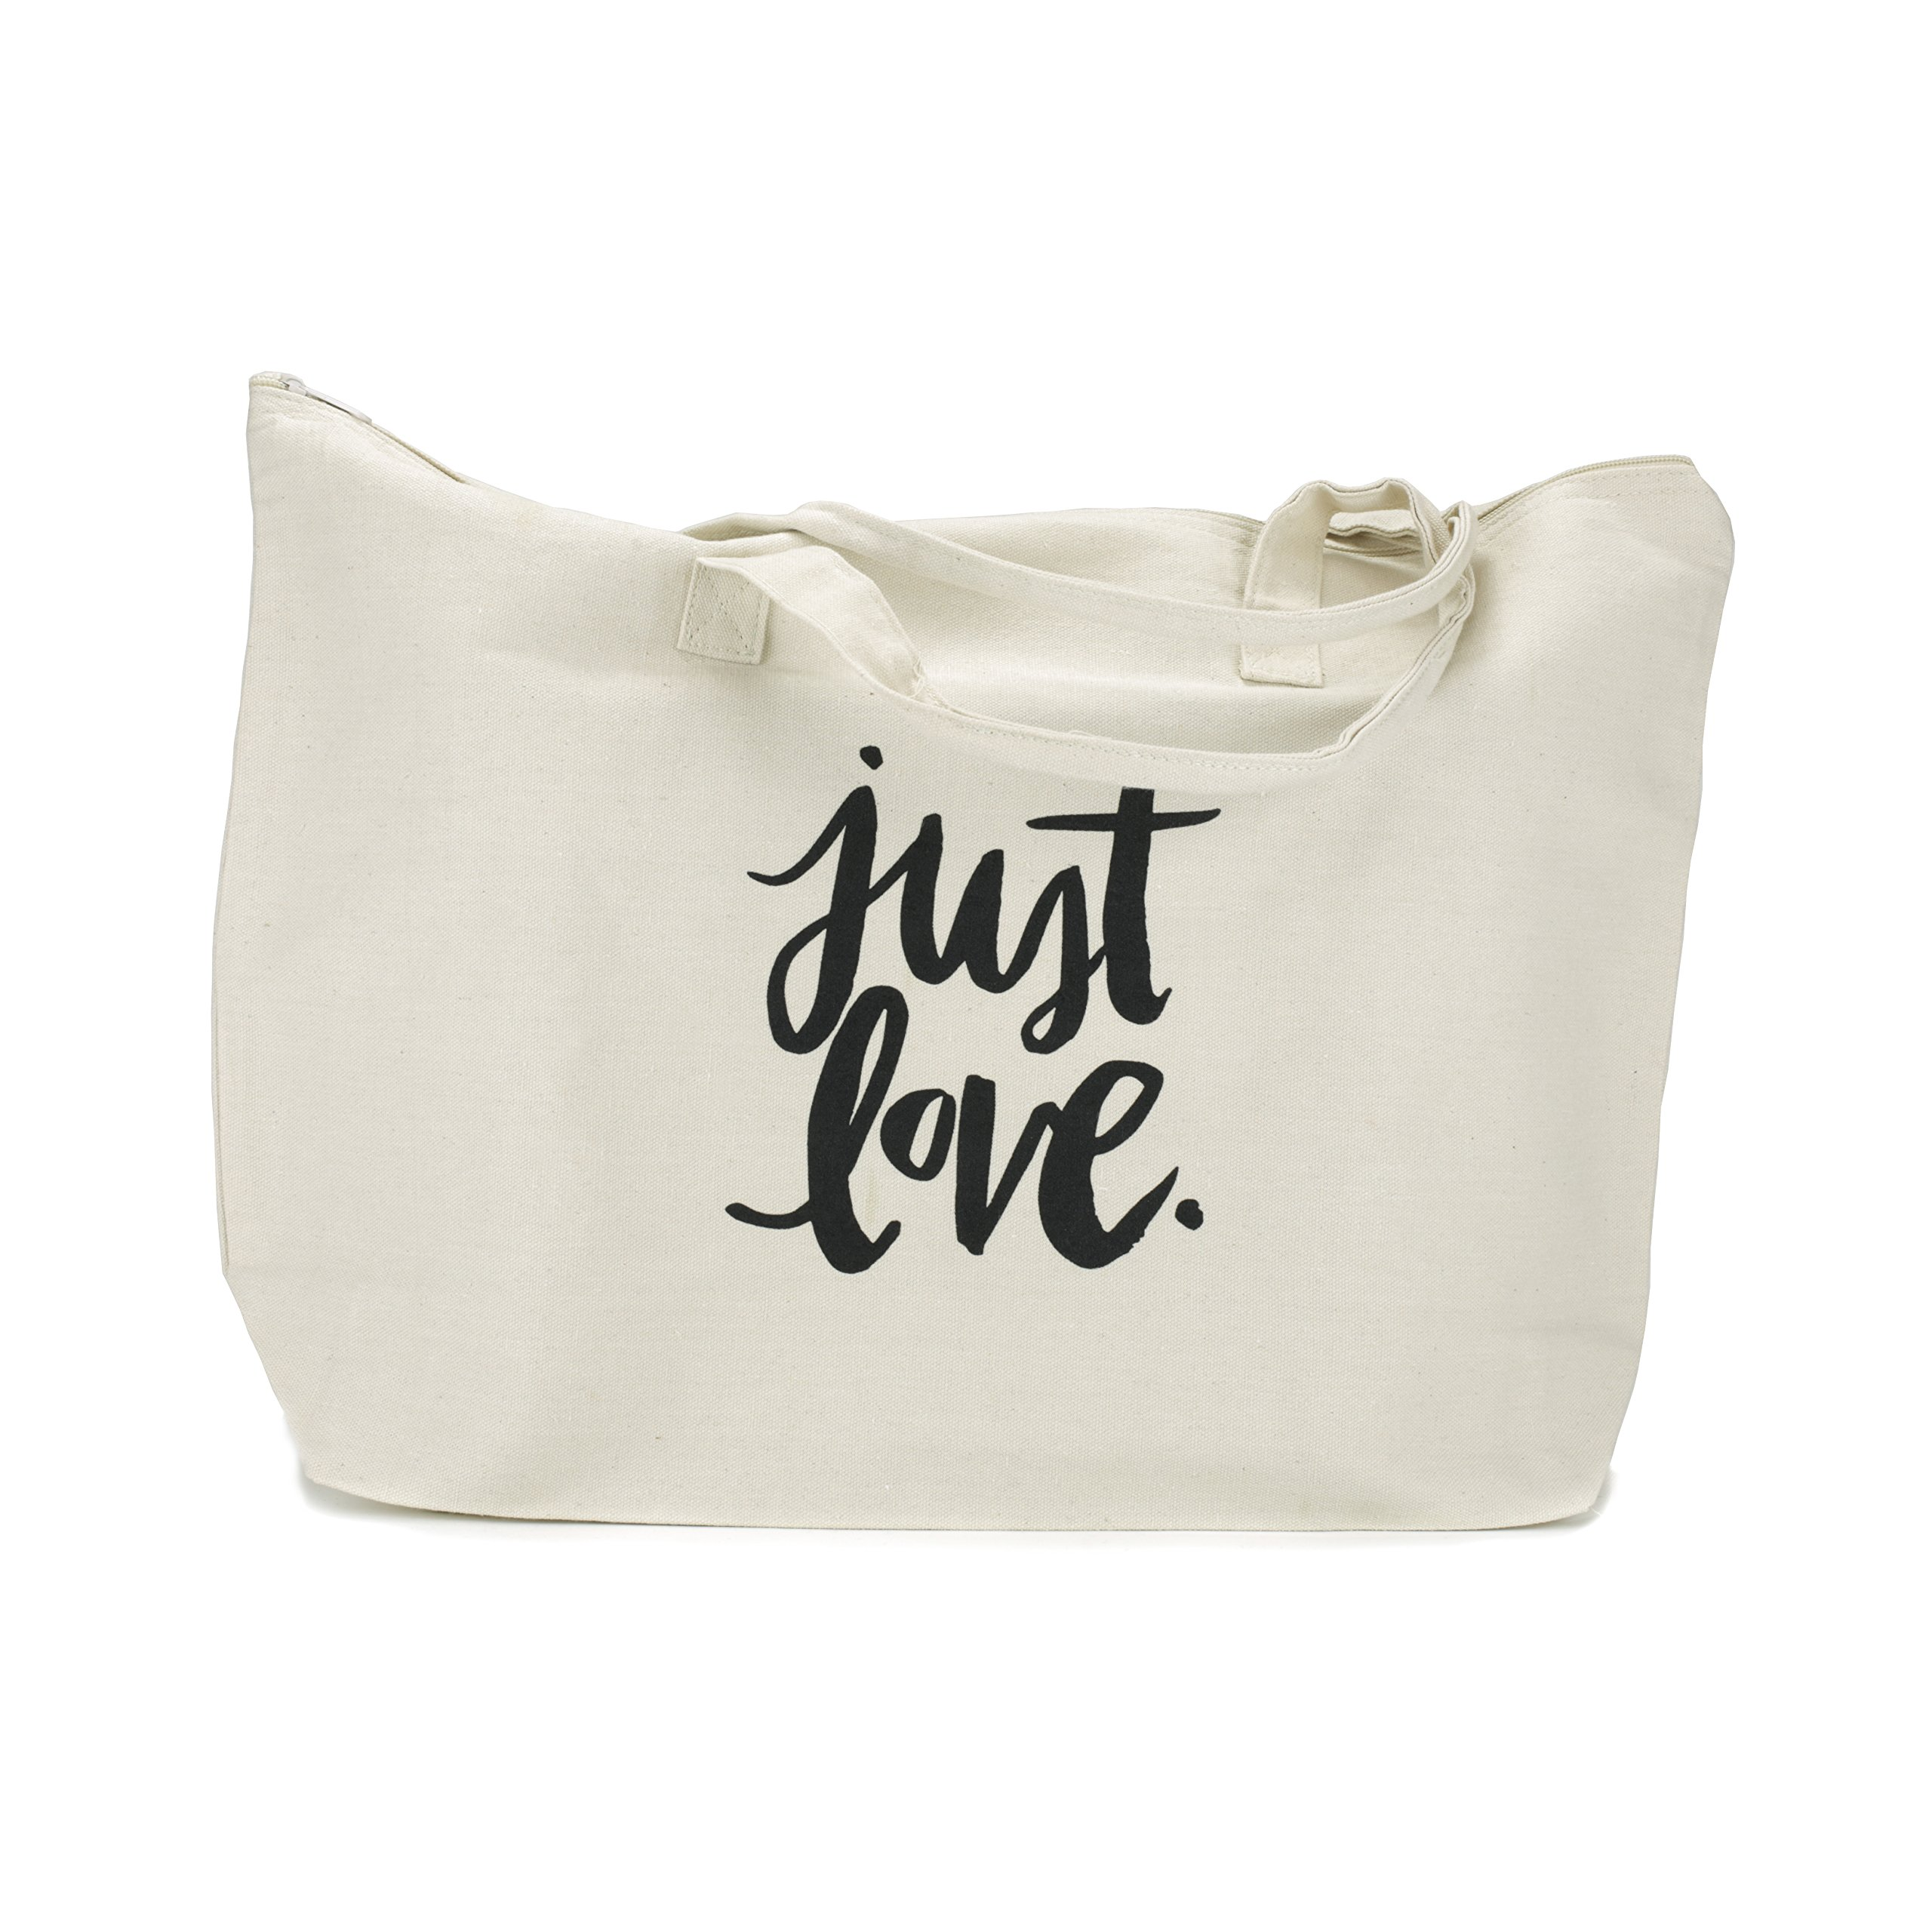 Canvas Tote Bag with Special Saying - Zipper Top, Interior Pocket, 100% Cotton (Natural - Just Love)